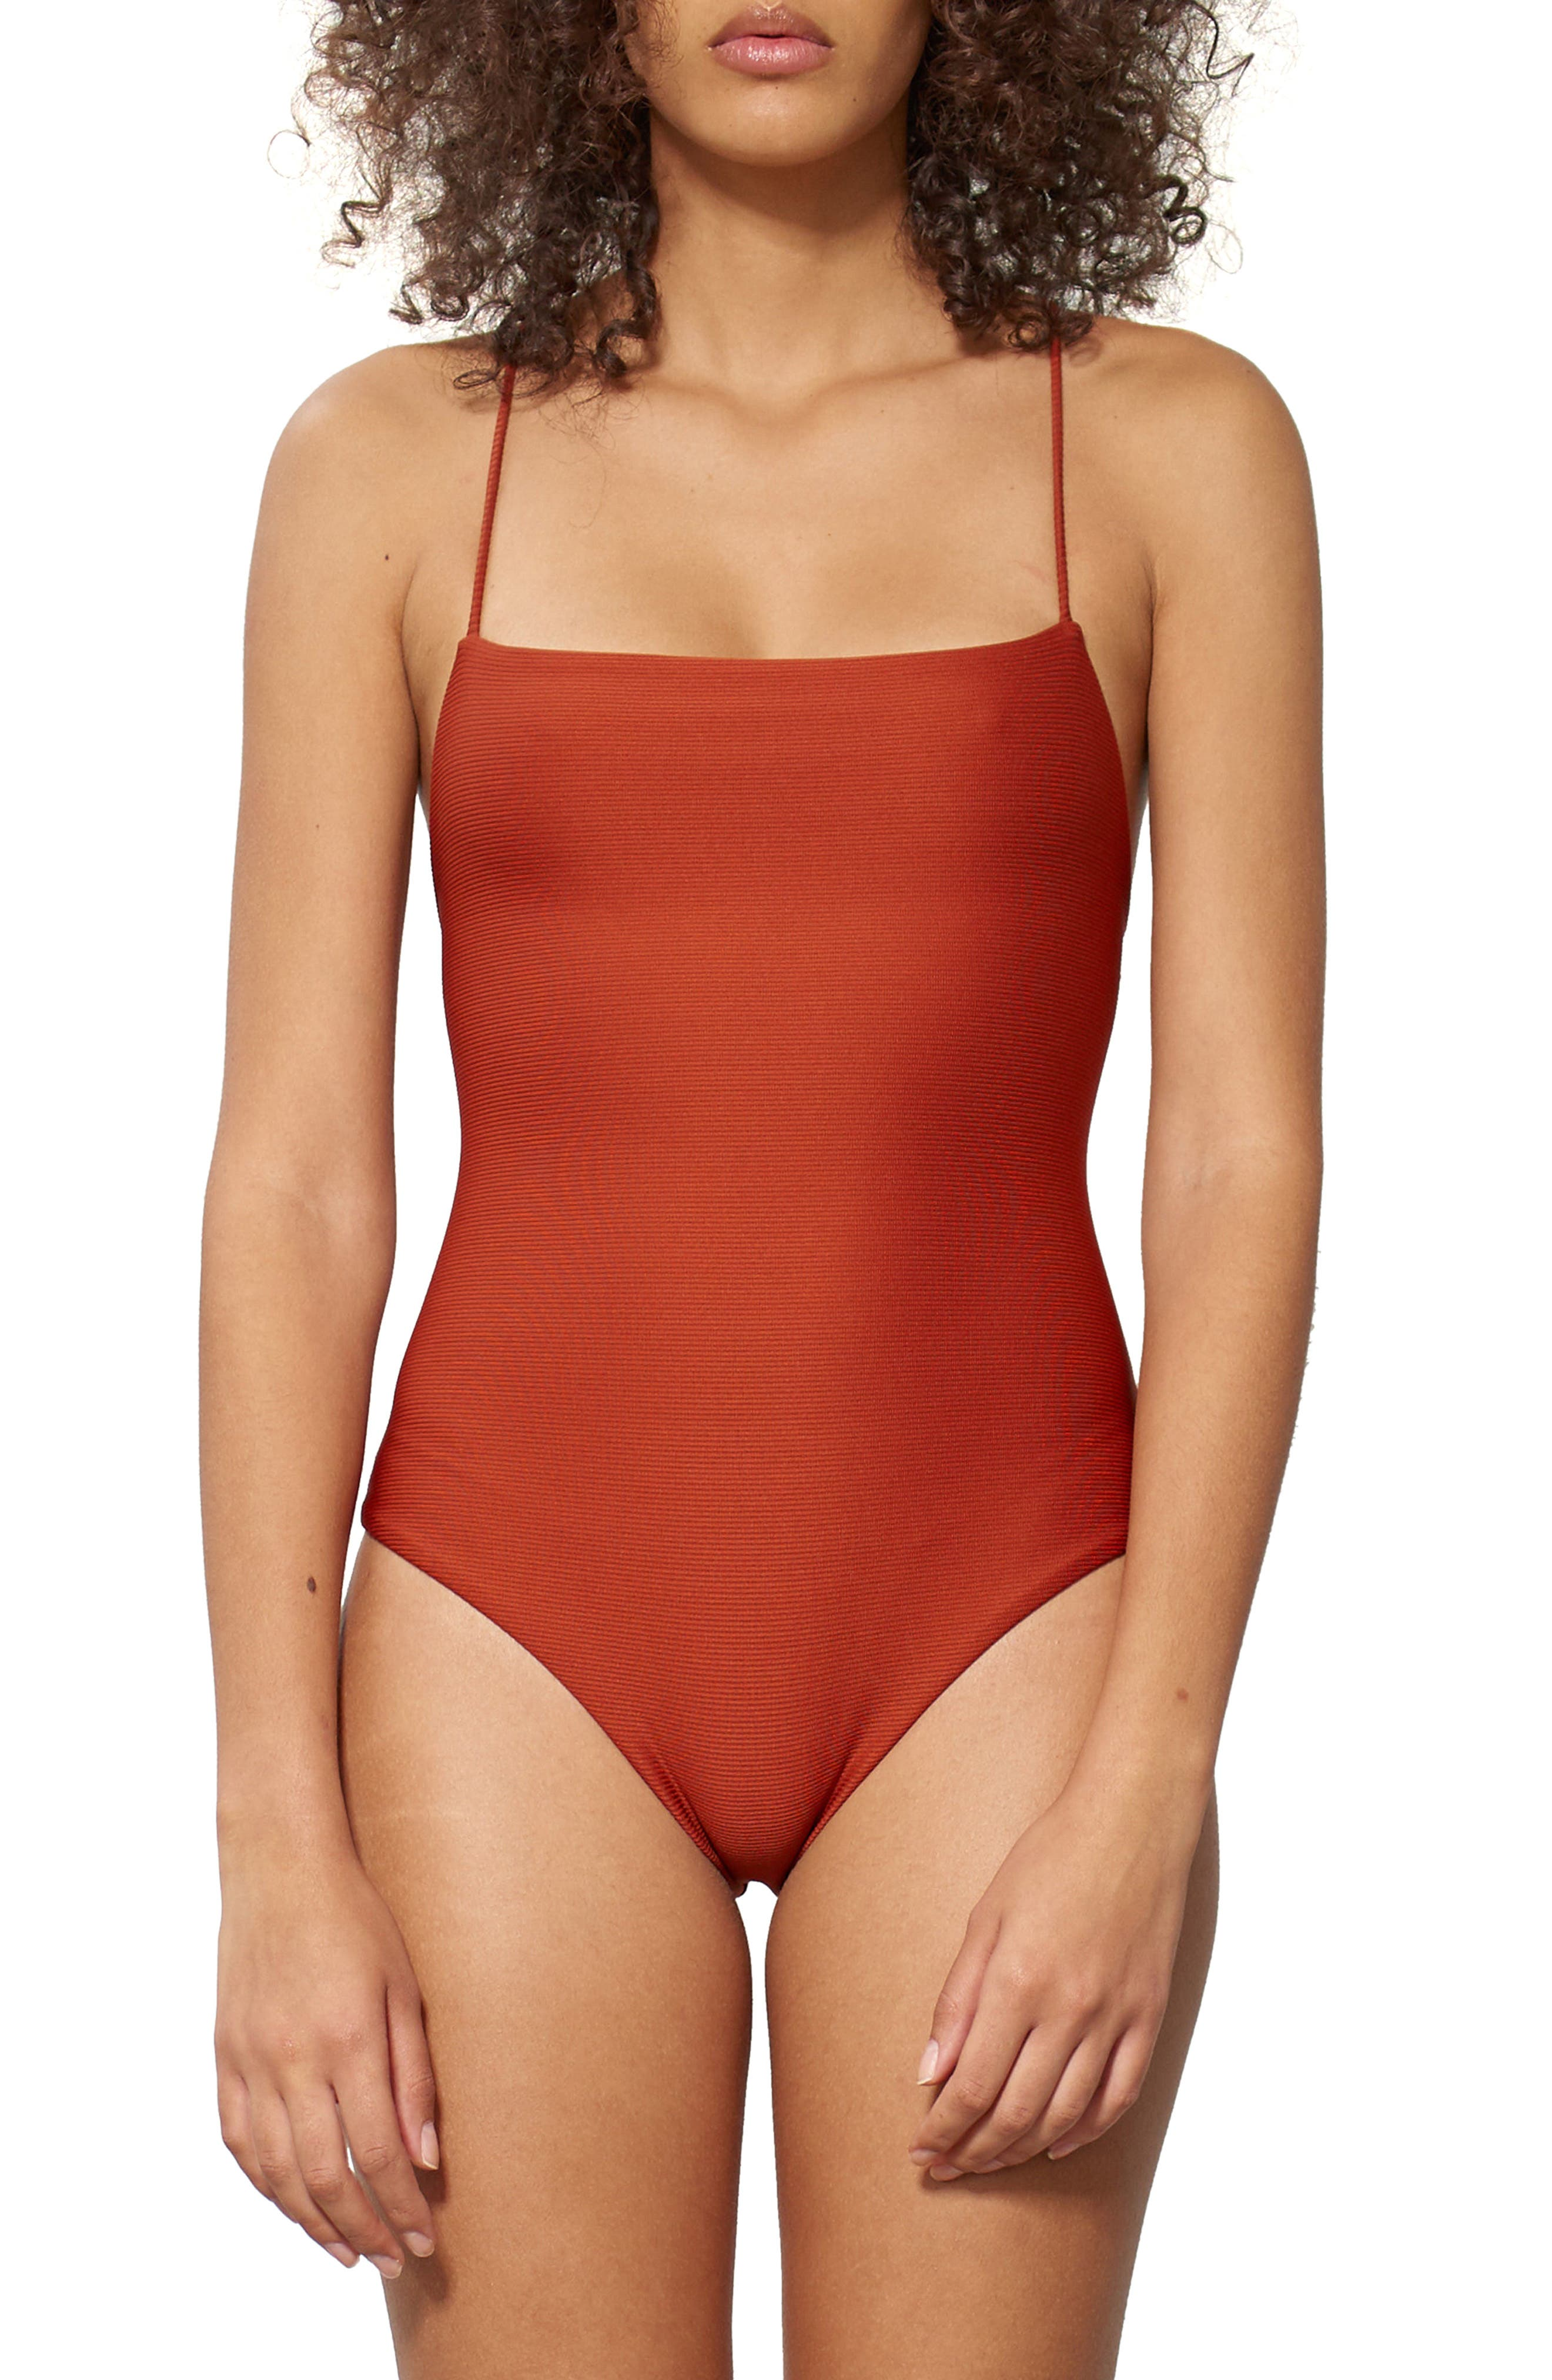 Olympia One-Piece Swimsuit,                             Main thumbnail 1, color,                             Rust